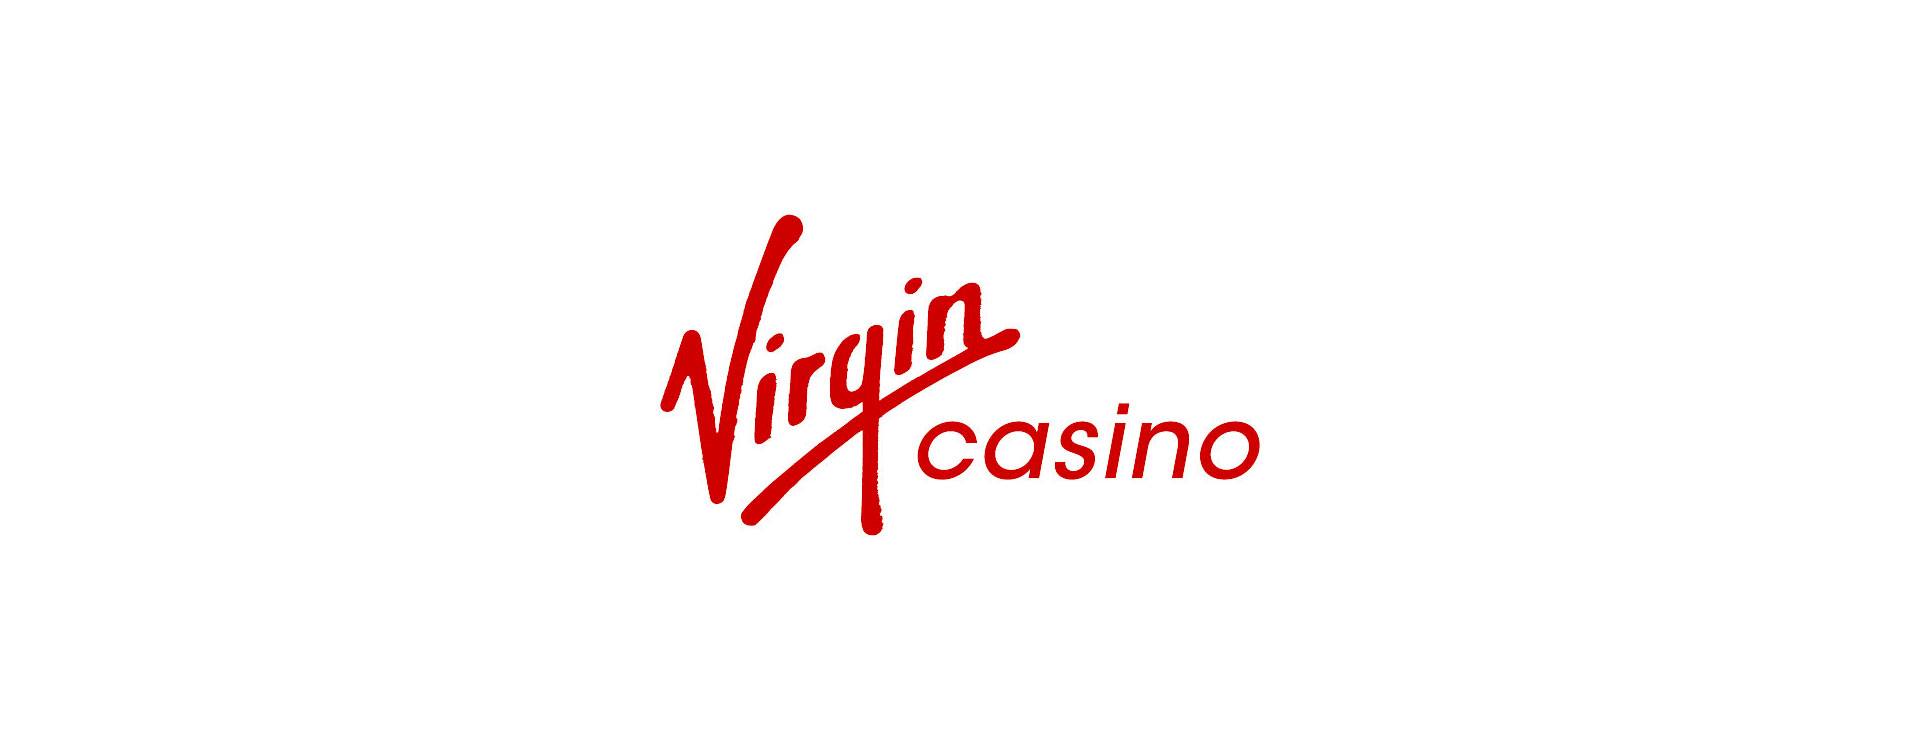 Virgin Online Casino New Jersey Review. Get $100 Real Cash Back!